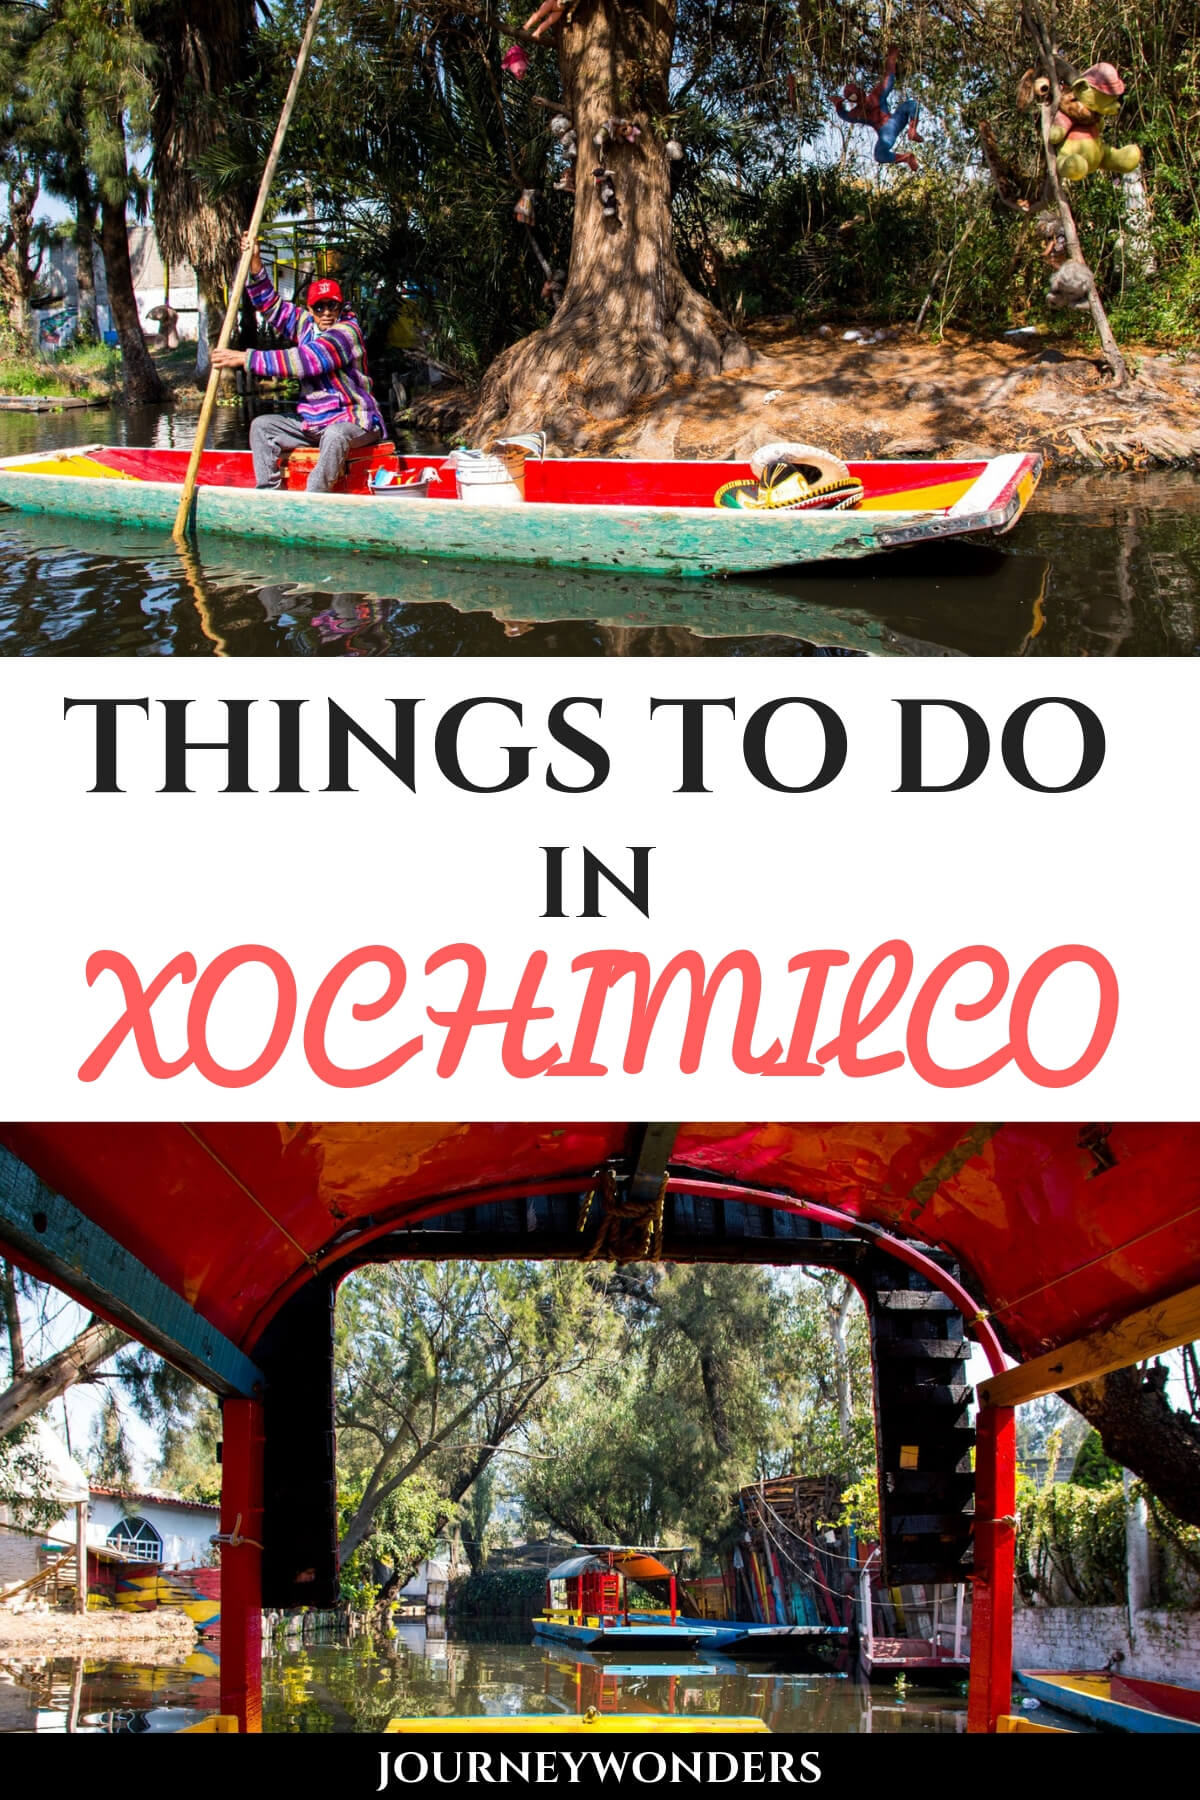 Things to do in Xochimilco #Mexico #Travel #CentralAmerica